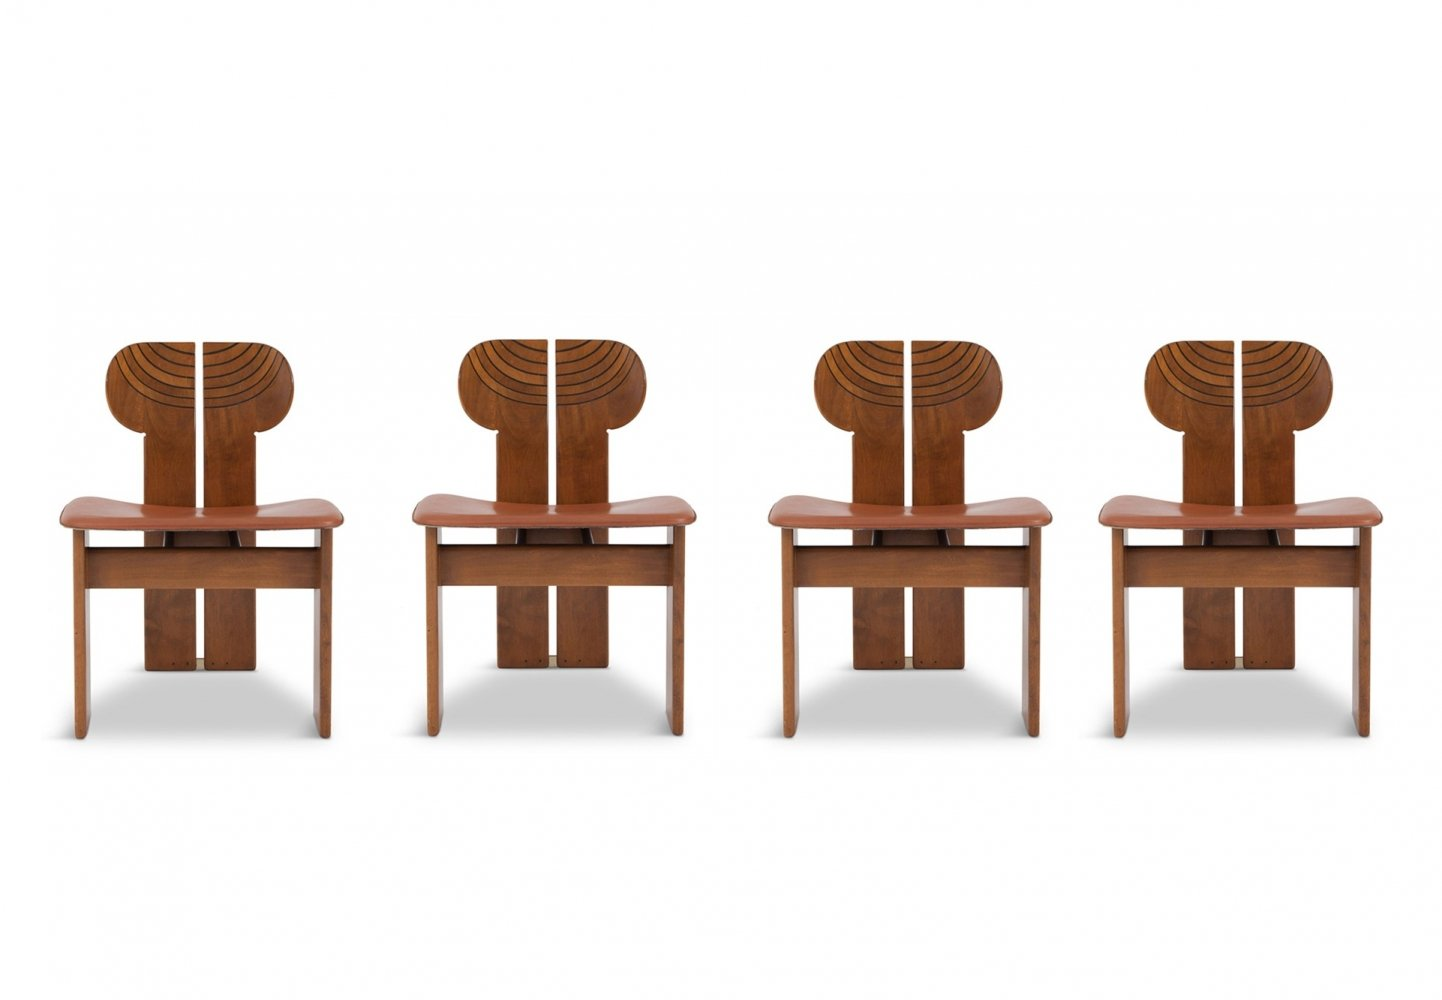 Afra & Tobia Scarpa Africa Chairs with Cognac Leather Seating, 1975